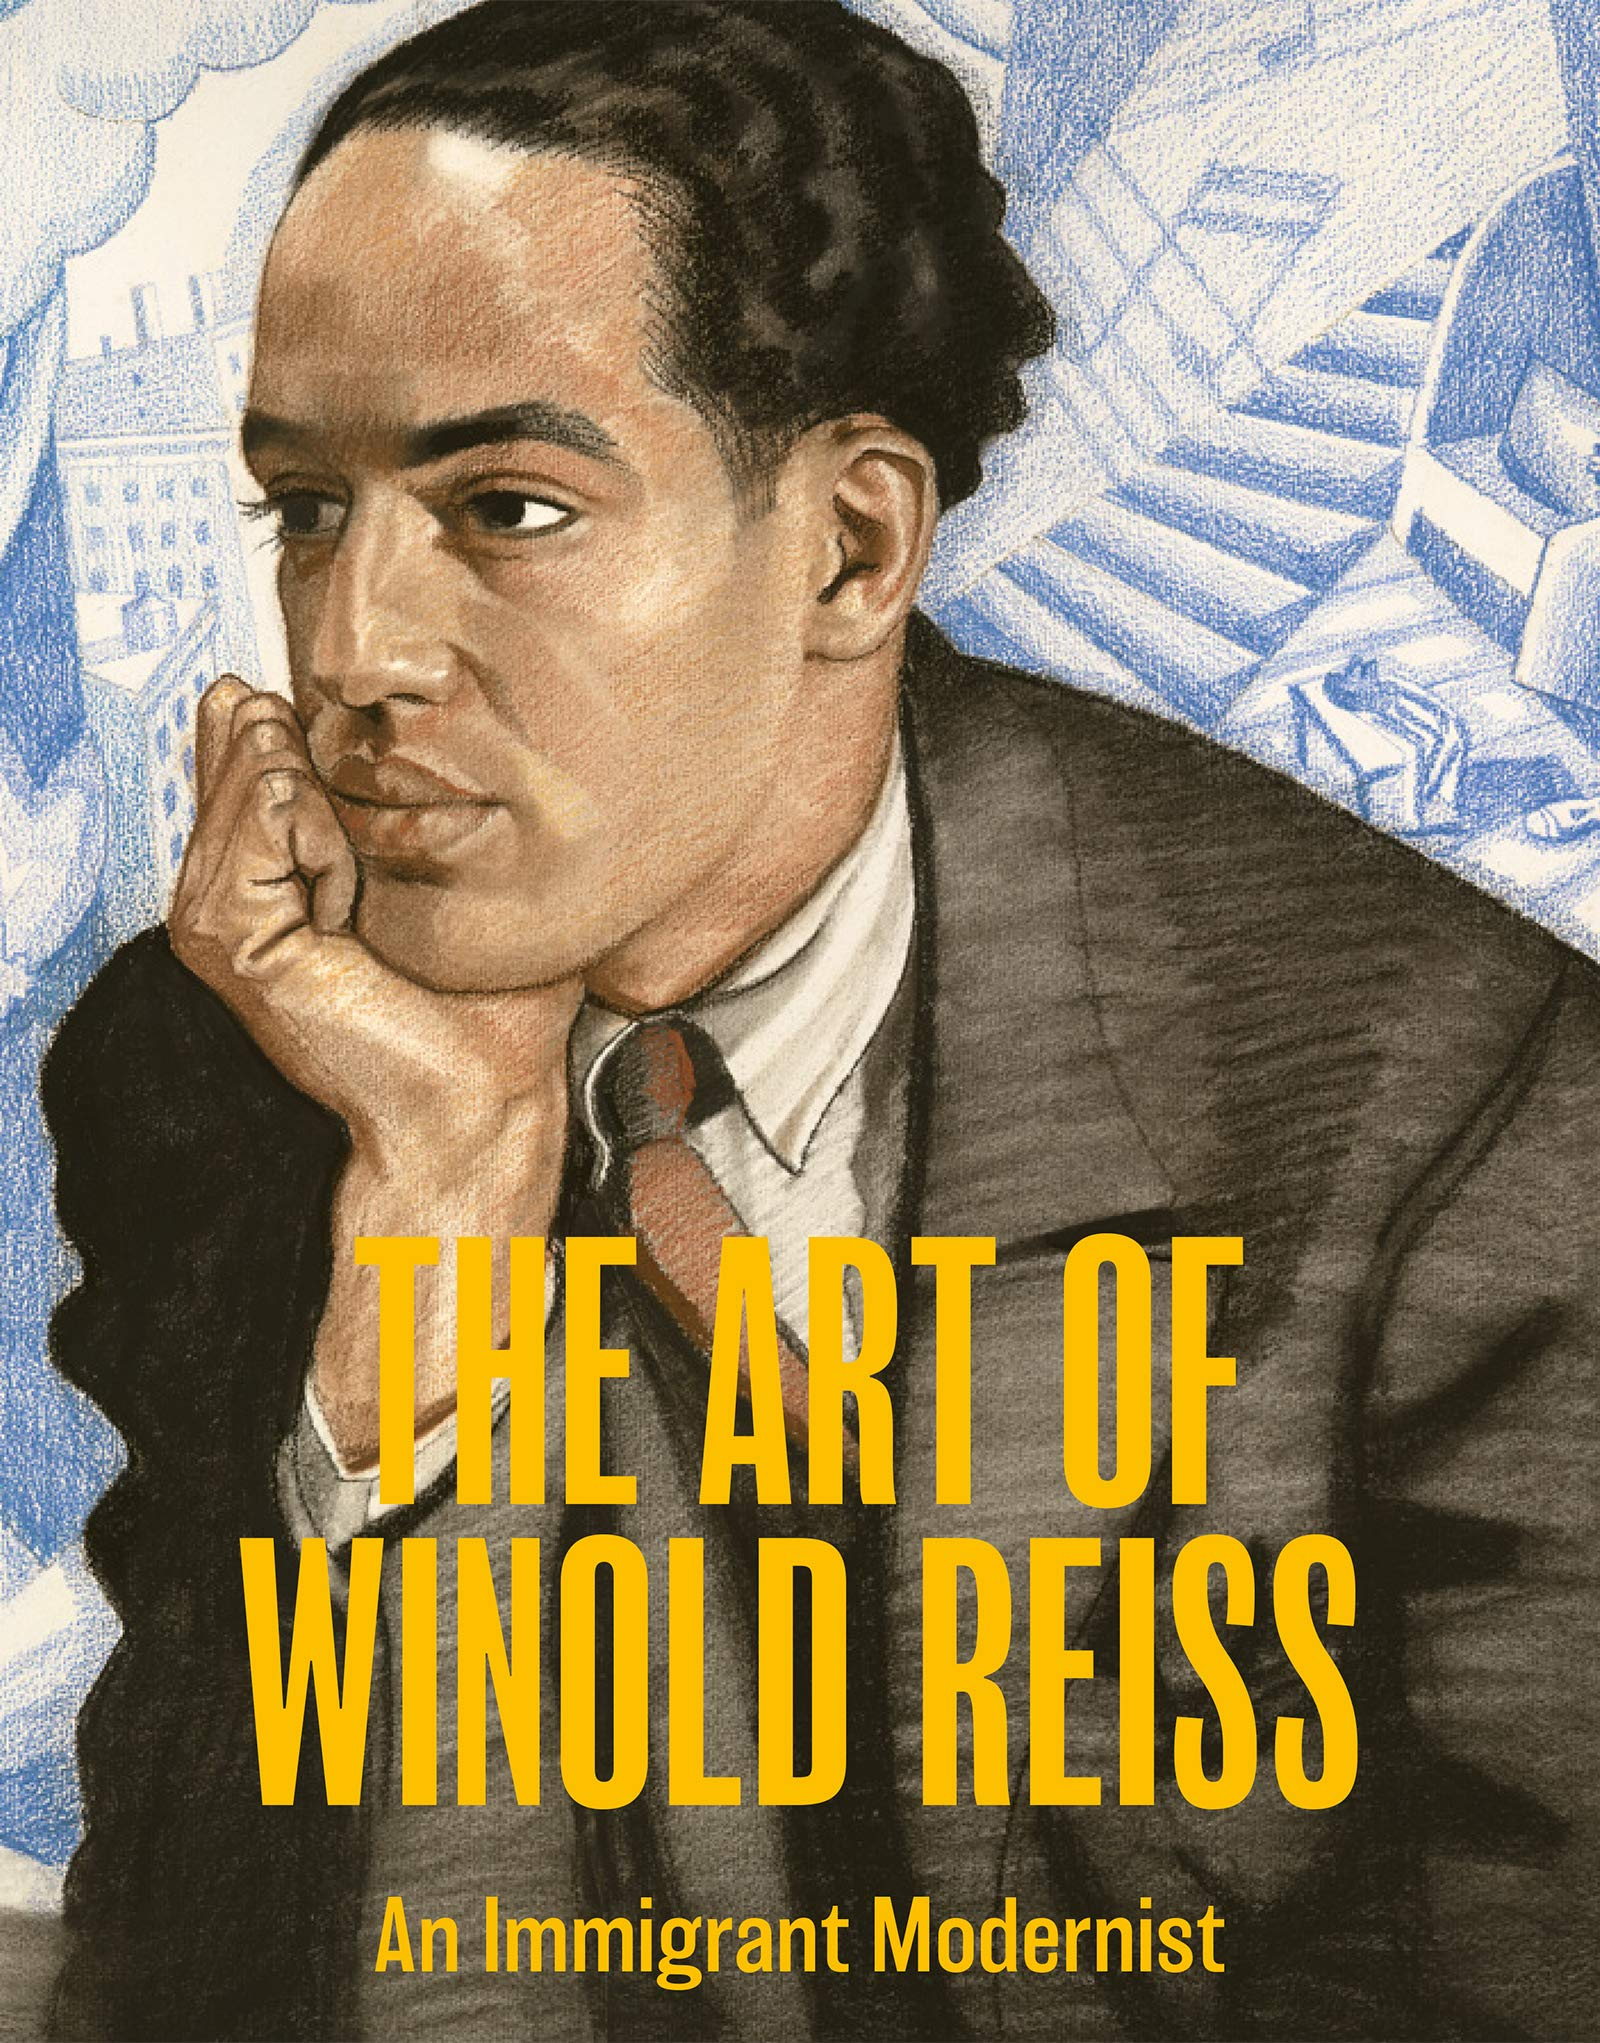 The Art of Winold Reiss: An Immigrant Modernist